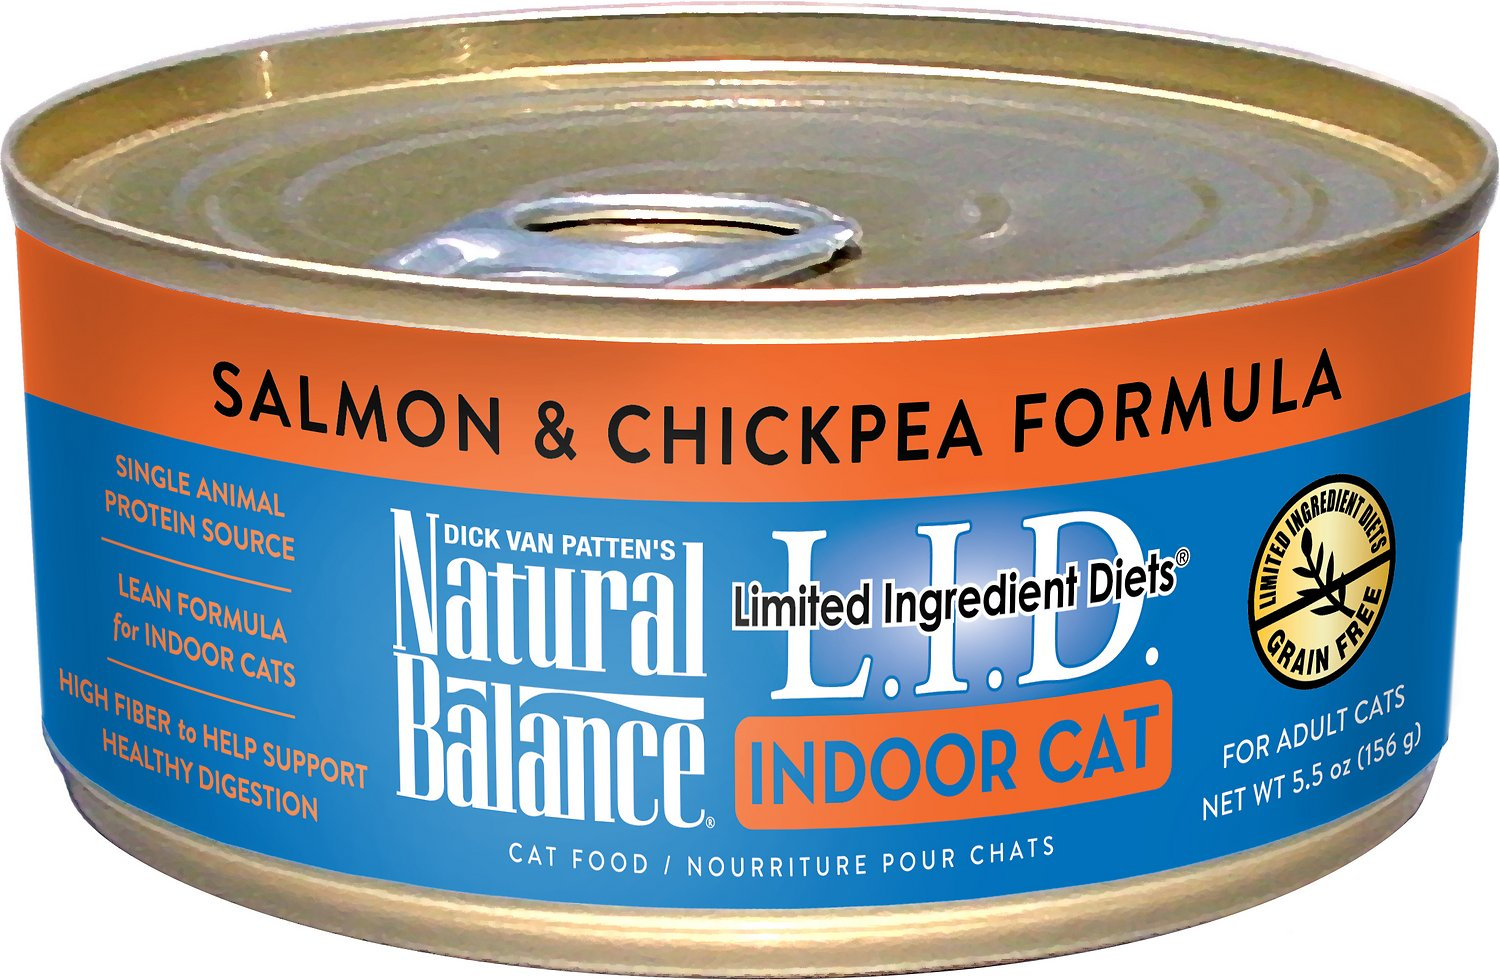 Natural Balance L.I.D. Limited Ingredient Diets Indoor Grain-Free Salmon & Chickpea Formula Wet Cat Food, 5.5-oz